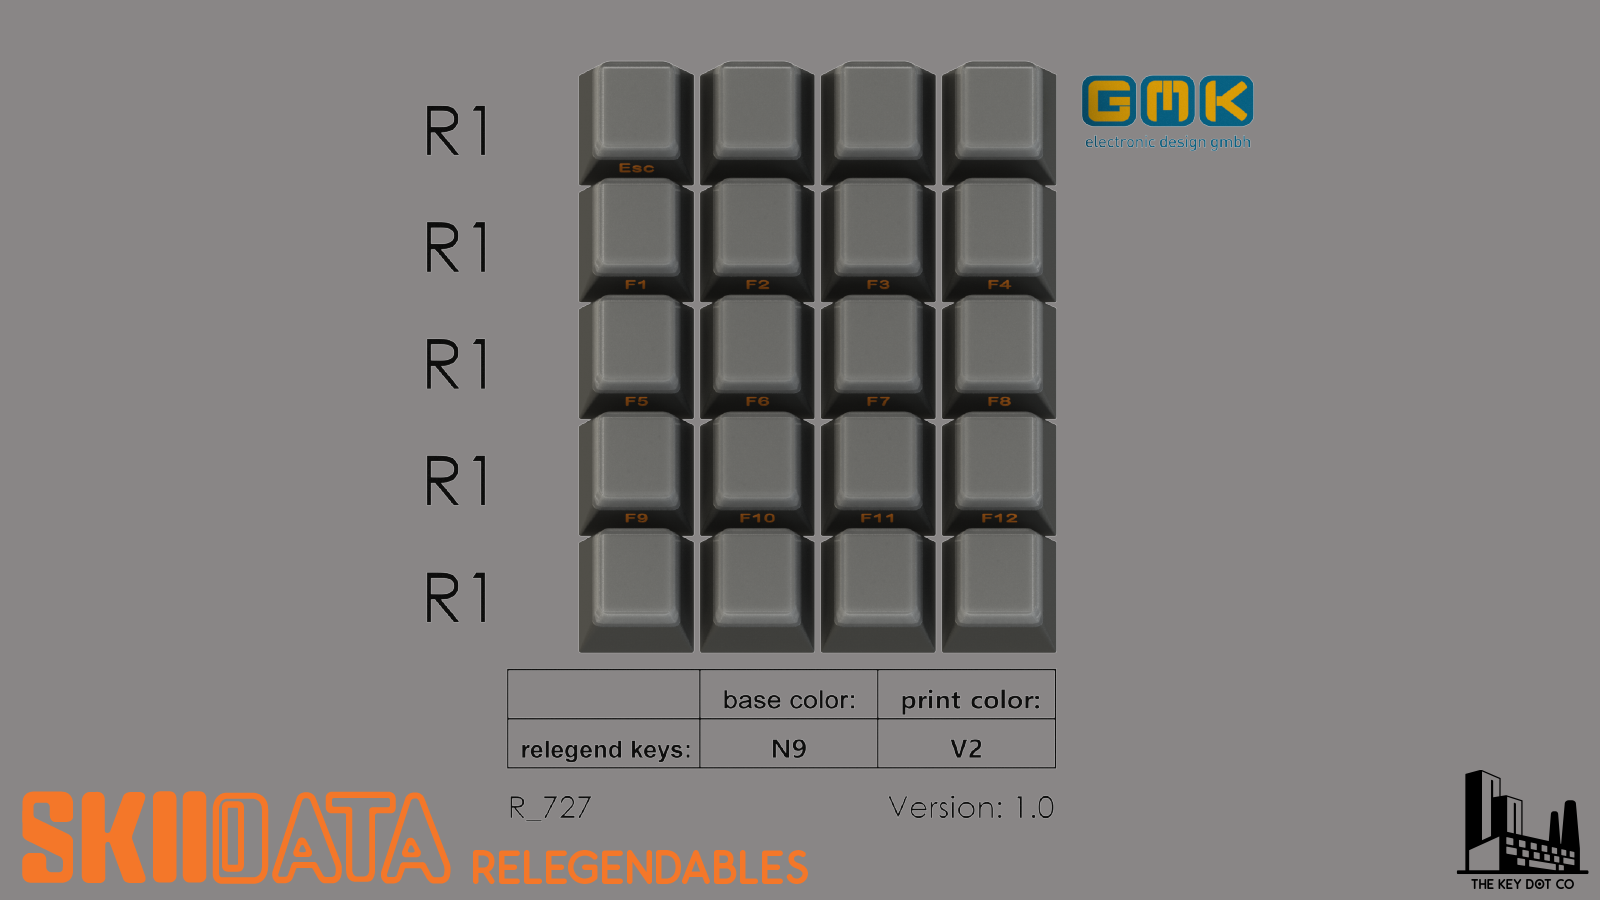 GMK SkIIdata Relegendables